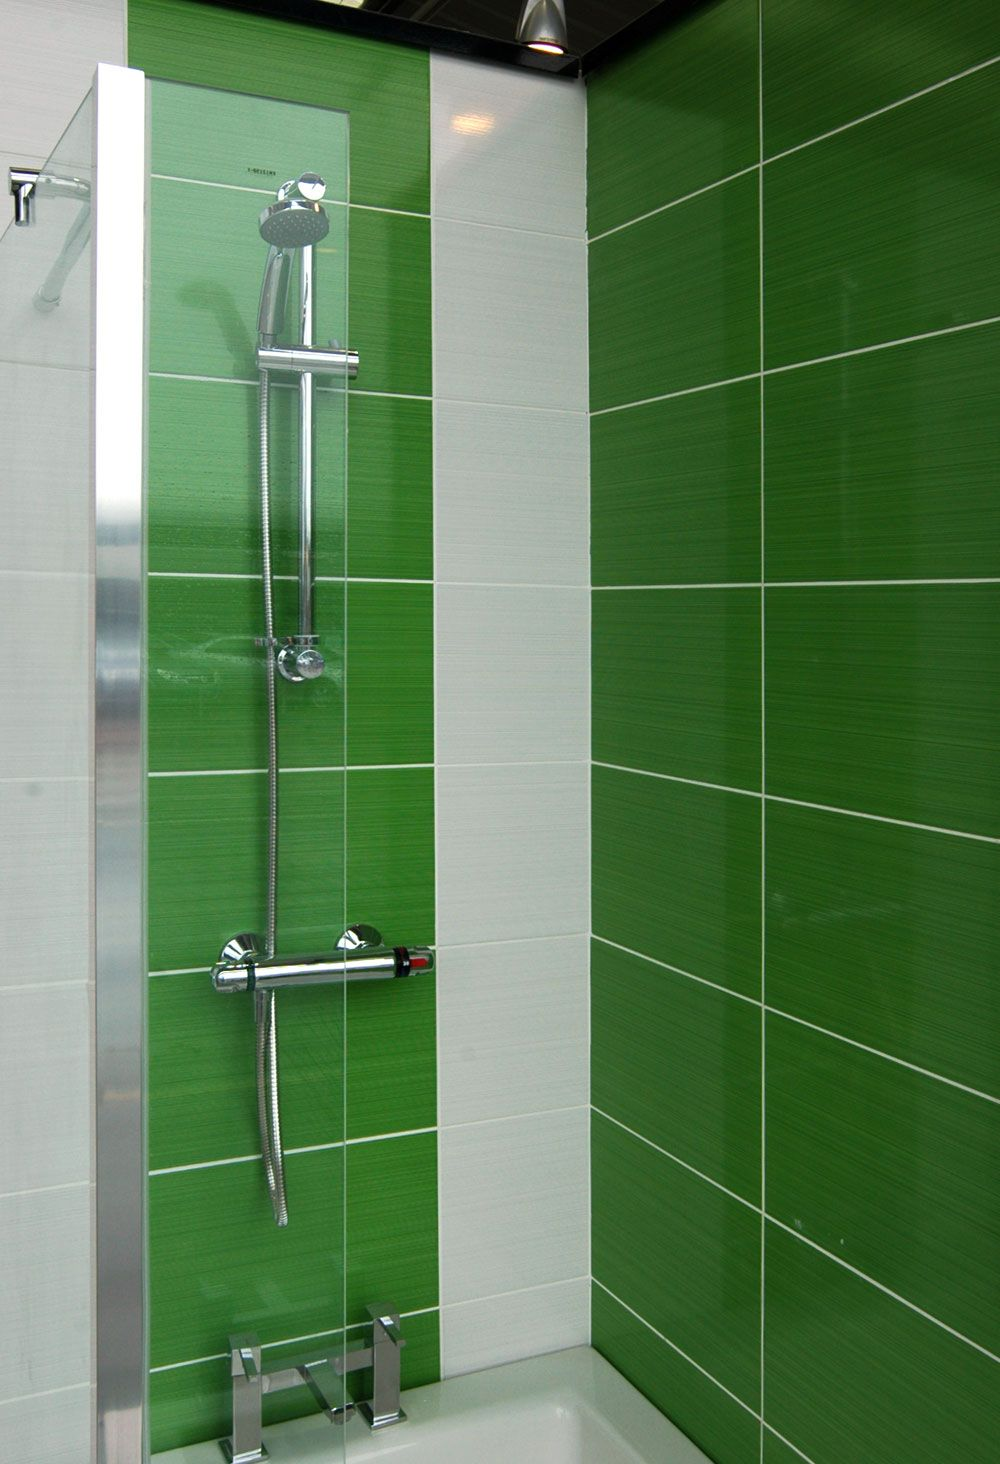 Brighton green 248x398cm gloss wall tile by british ceramic brighton green 248x398cm gloss wall tile by british ceramic tiles uk doublecrazyfo Choice Image